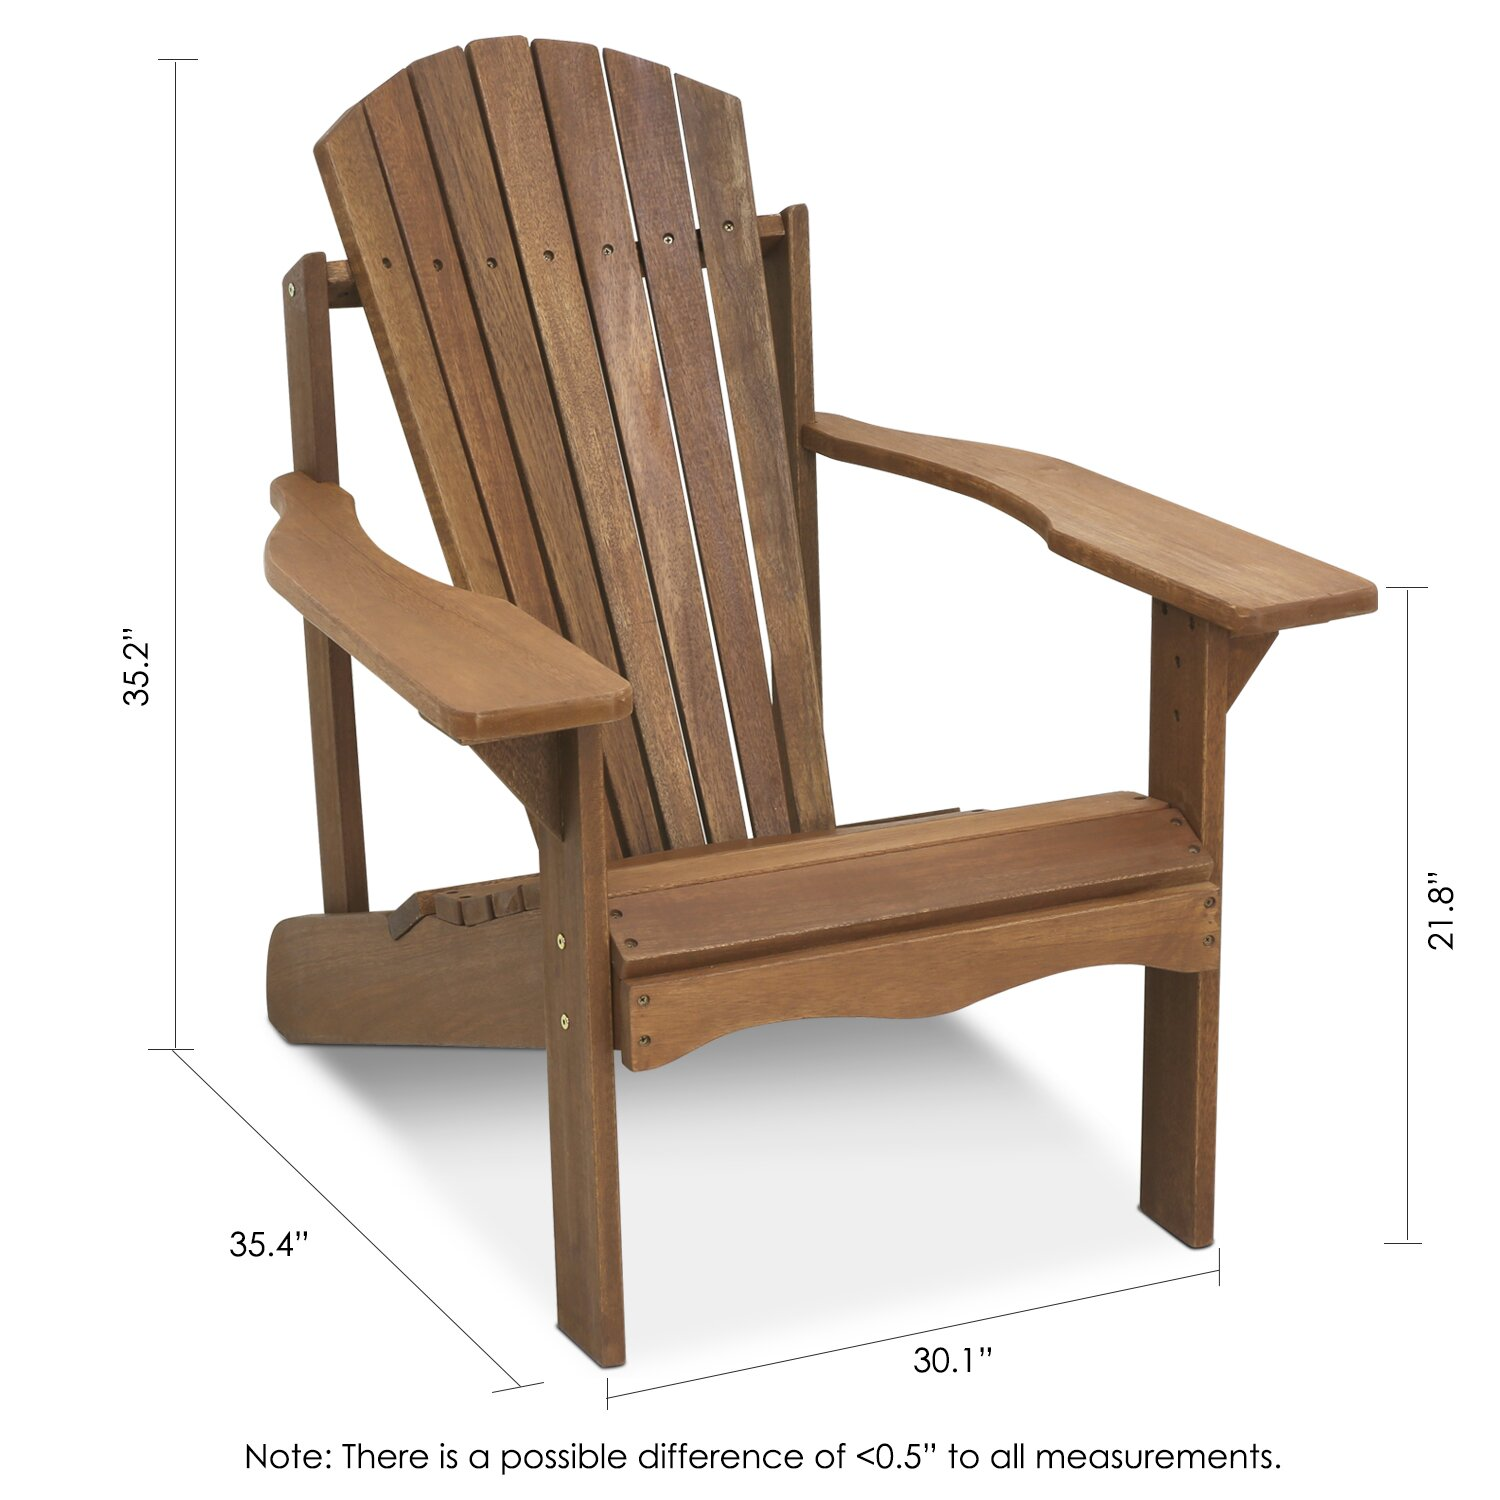 Furinno Tioman Teak Hardwood Adirondack Patio Chair Reviews Wayfair